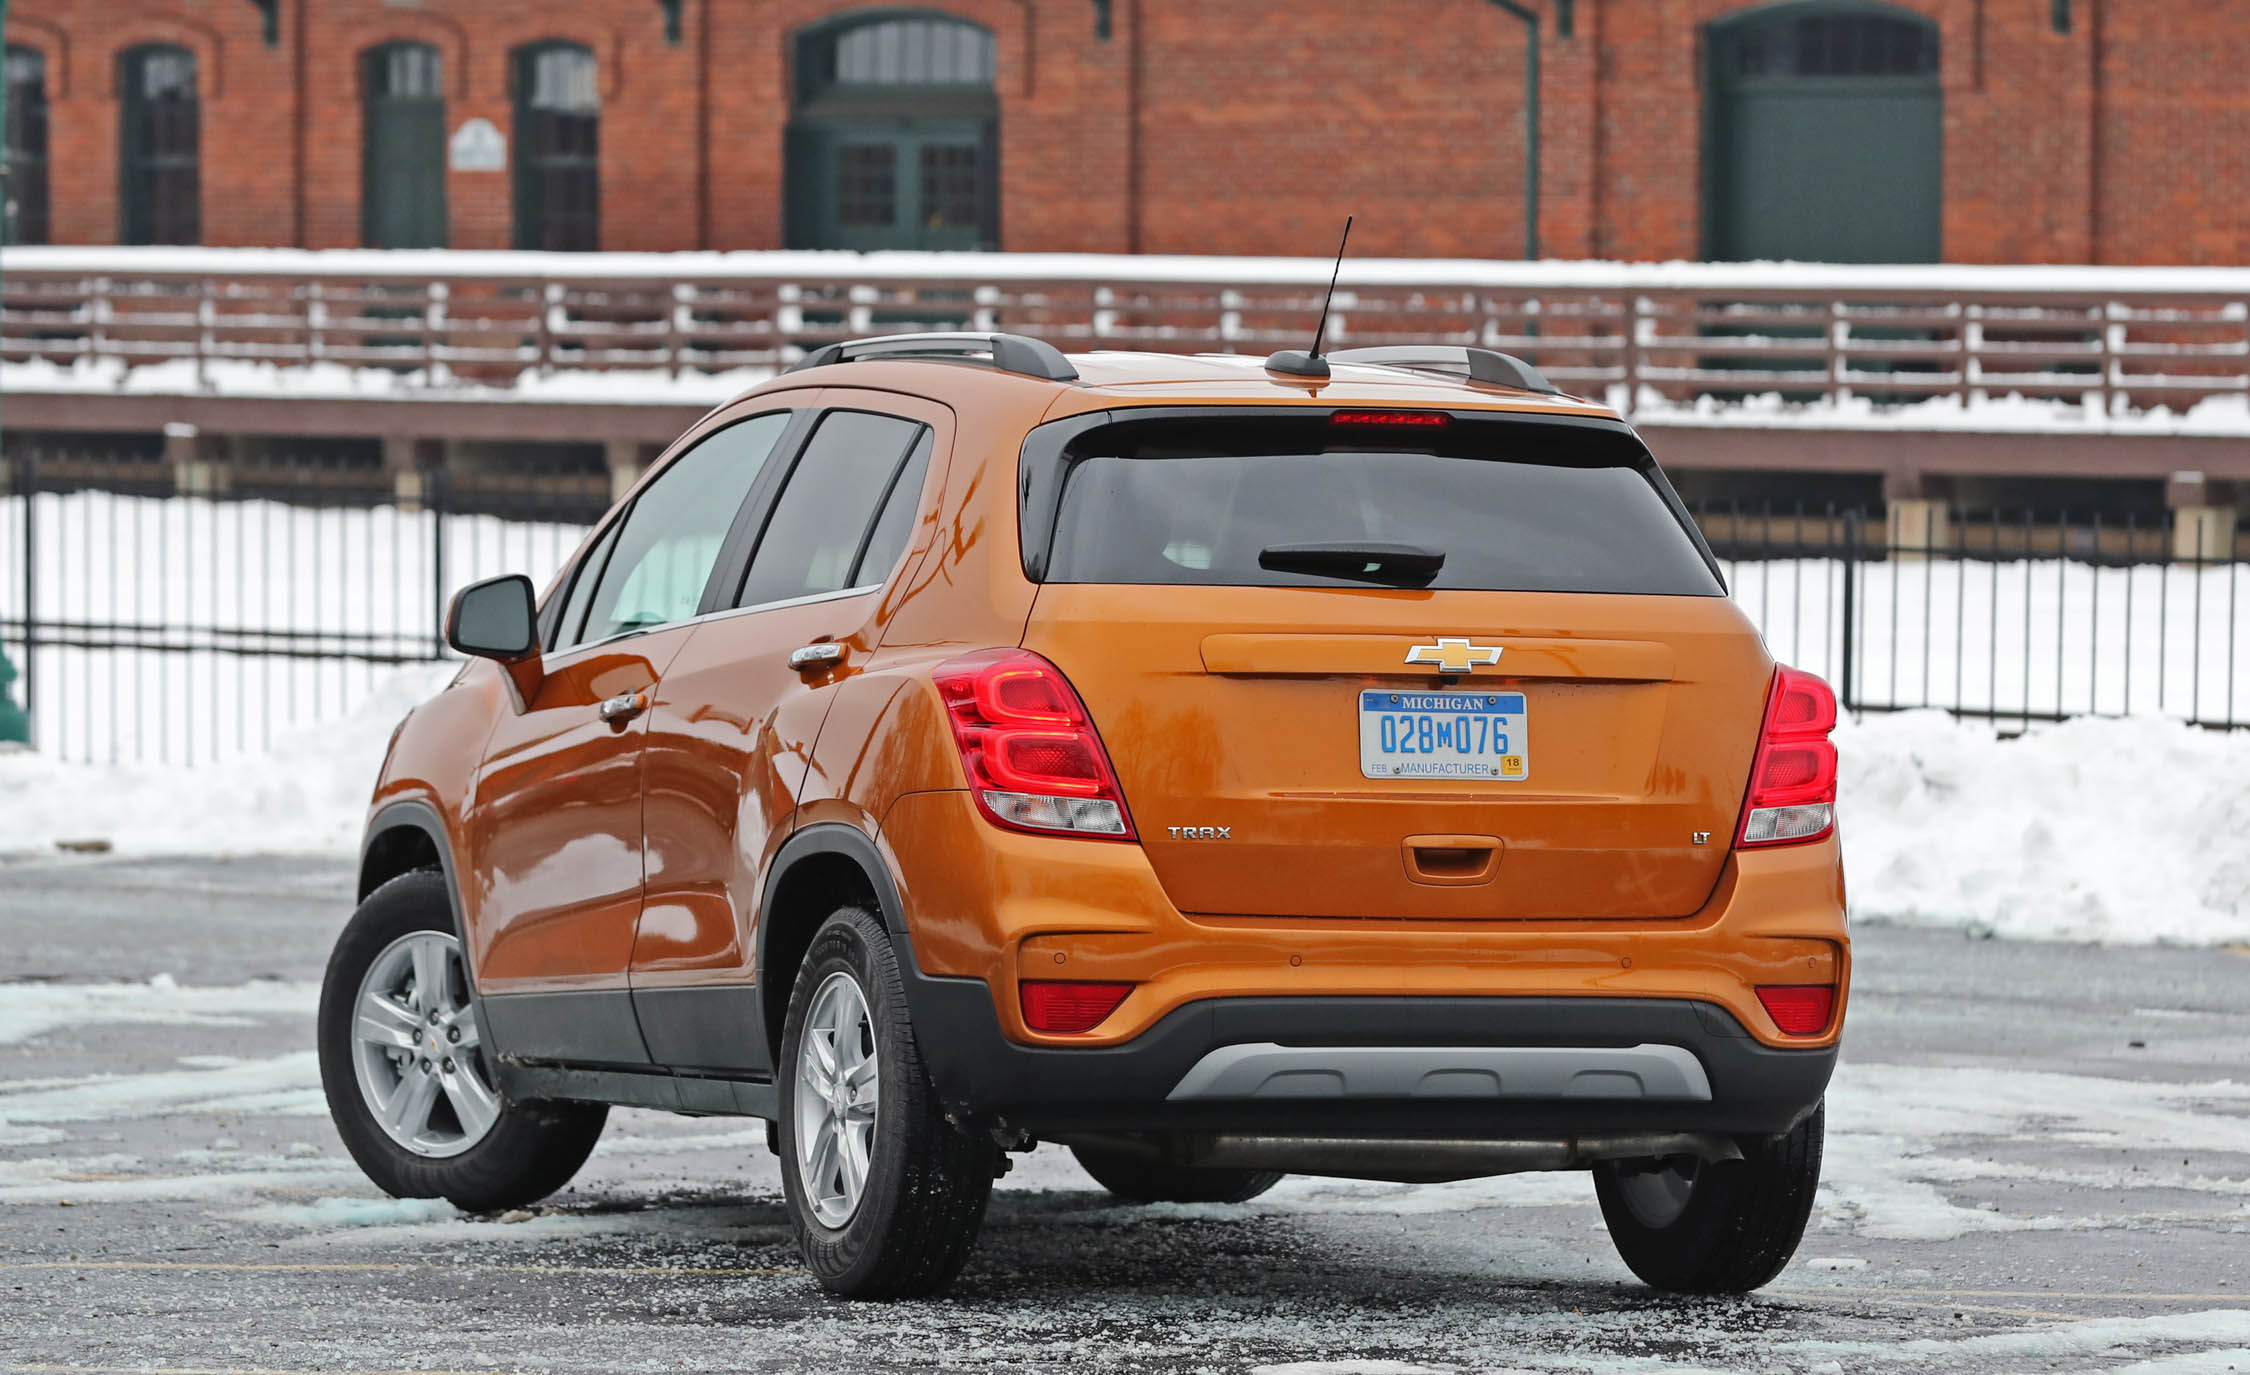 2017 Chevrolet Trax Exterior Rear (View 45 of 47)